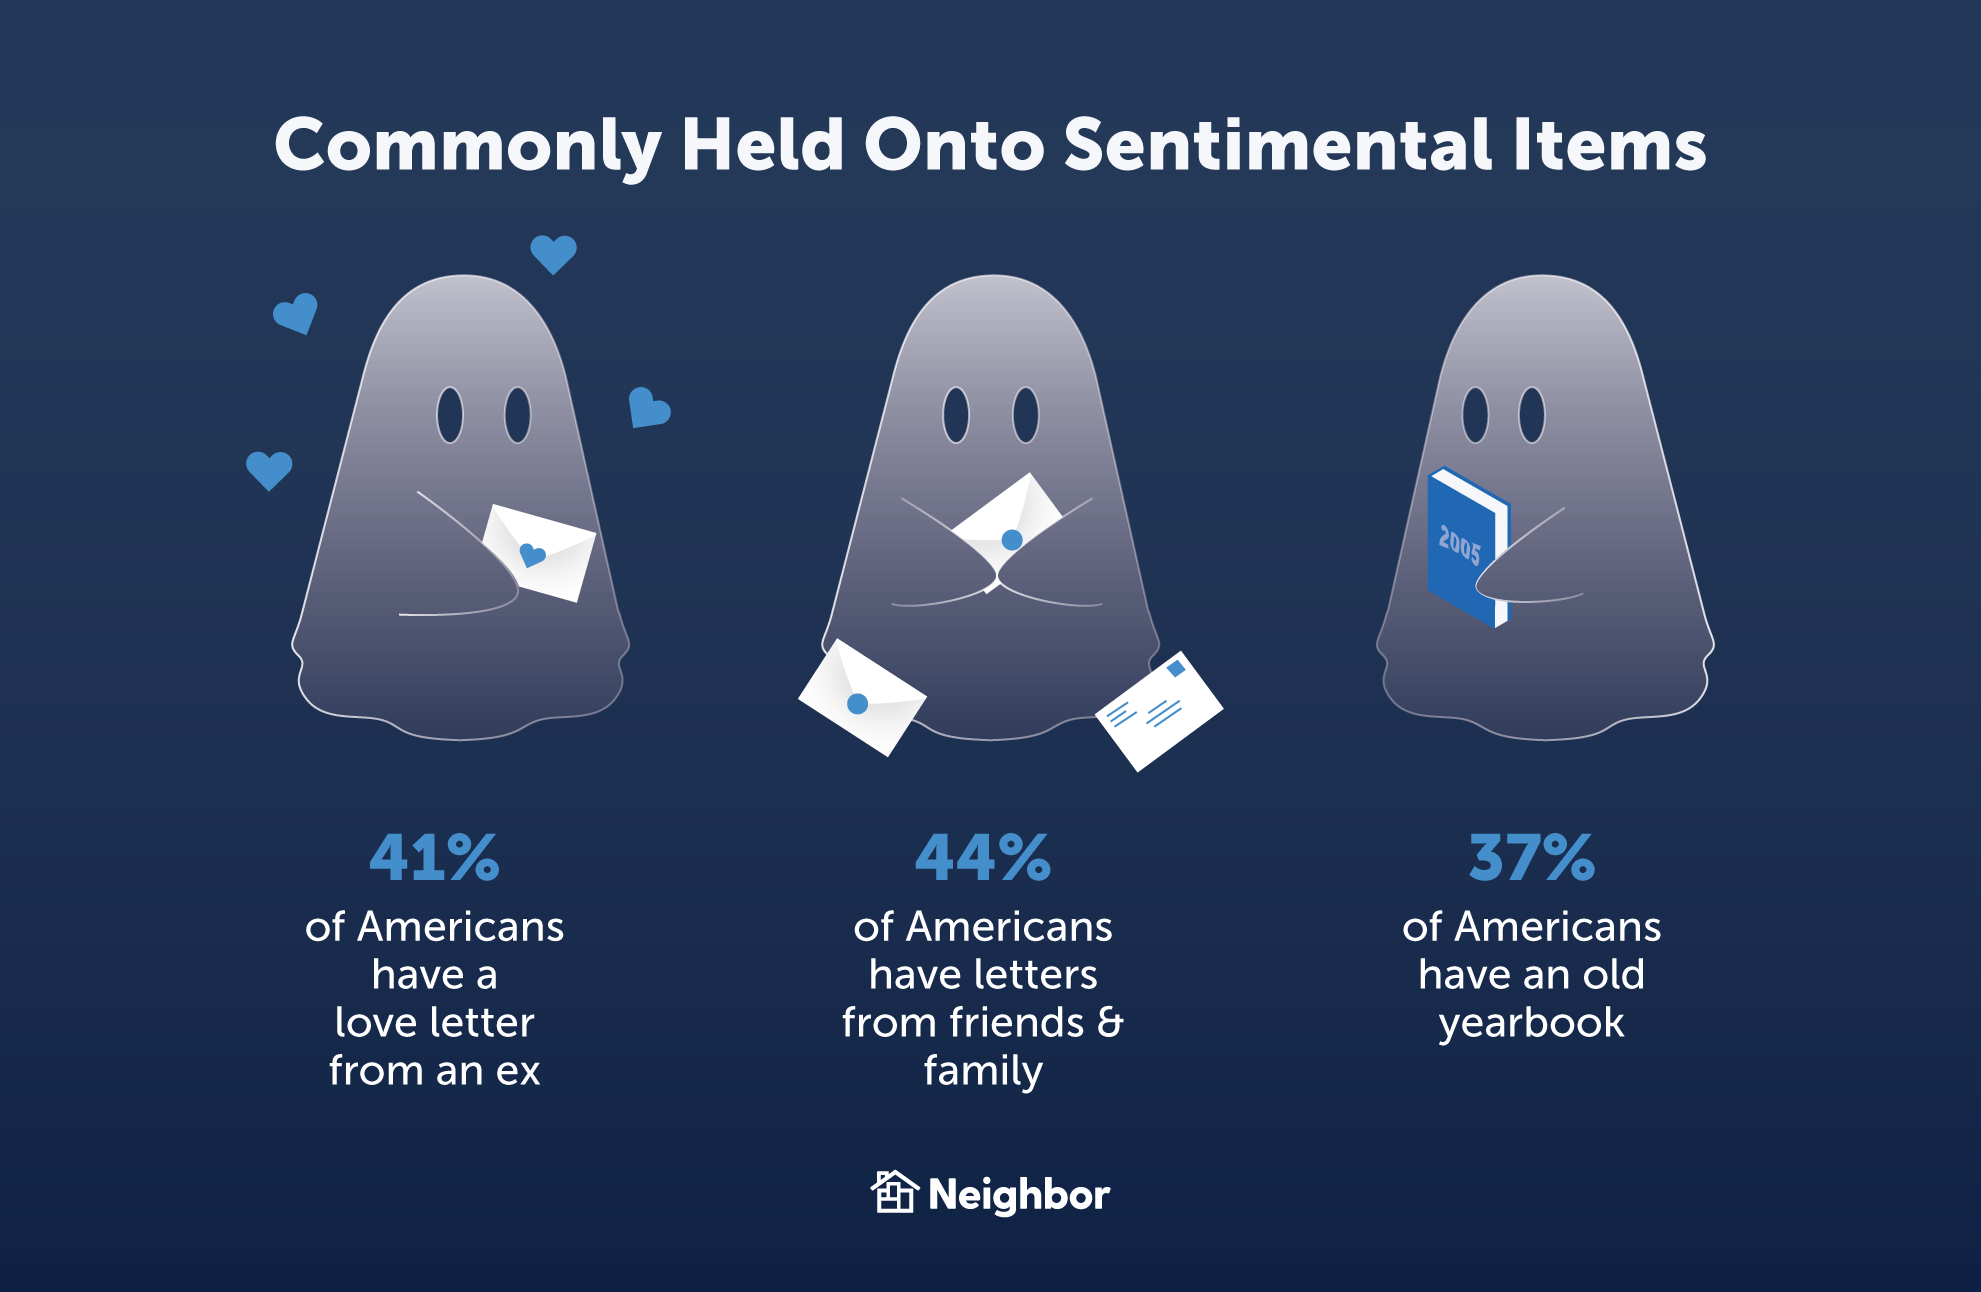 Many people are sentimental about past connections — and keep items that reflect that